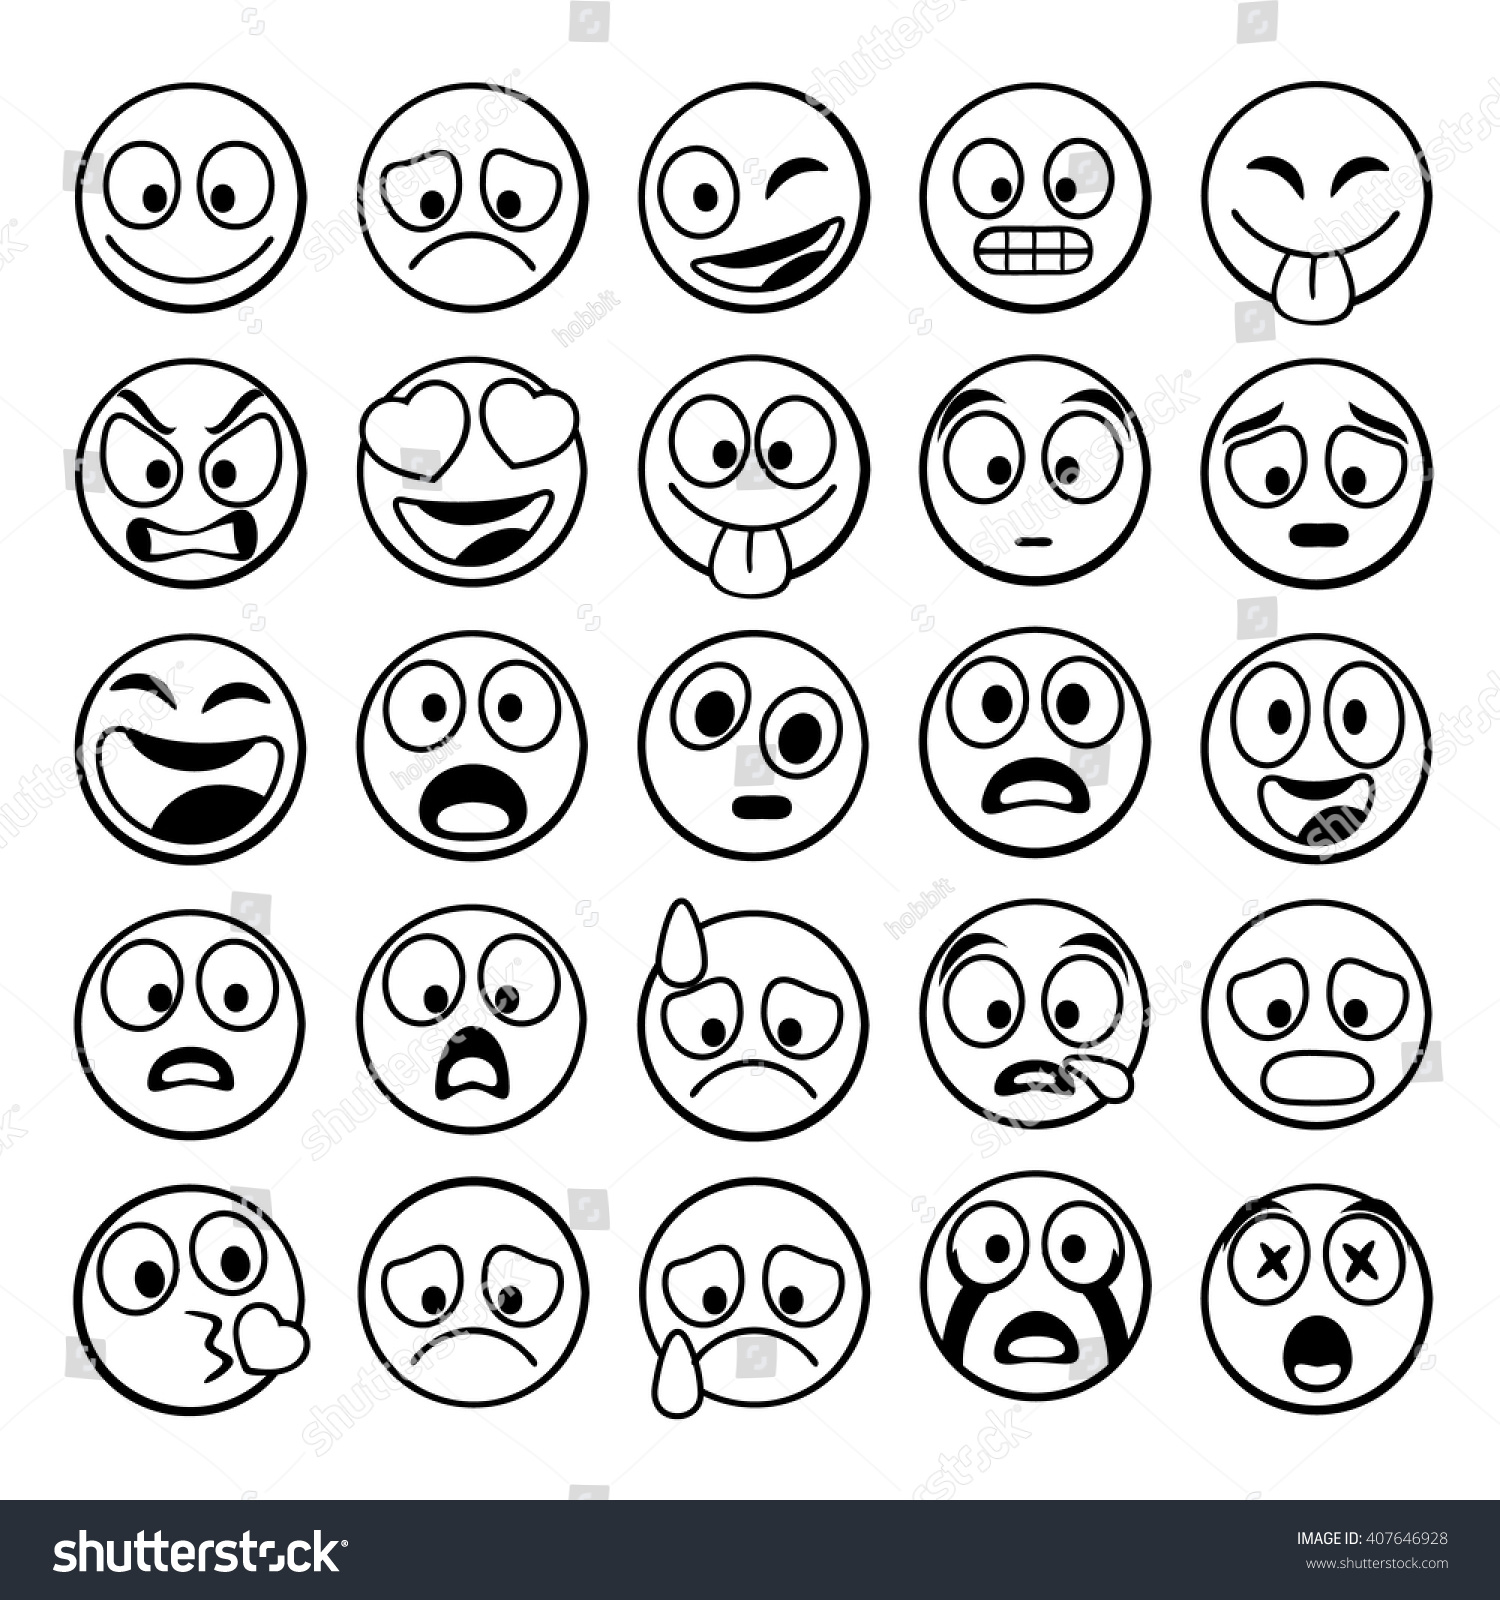 Cartoon Nose Images together with Picture Of A Tooth in addition Nine Tailed Fox Wallpaper likewise Nasal Endoscopy Explanation also 407646928 Shutterstock Set Of Emoji Vector Illustration. on cartoon mouth coloring page